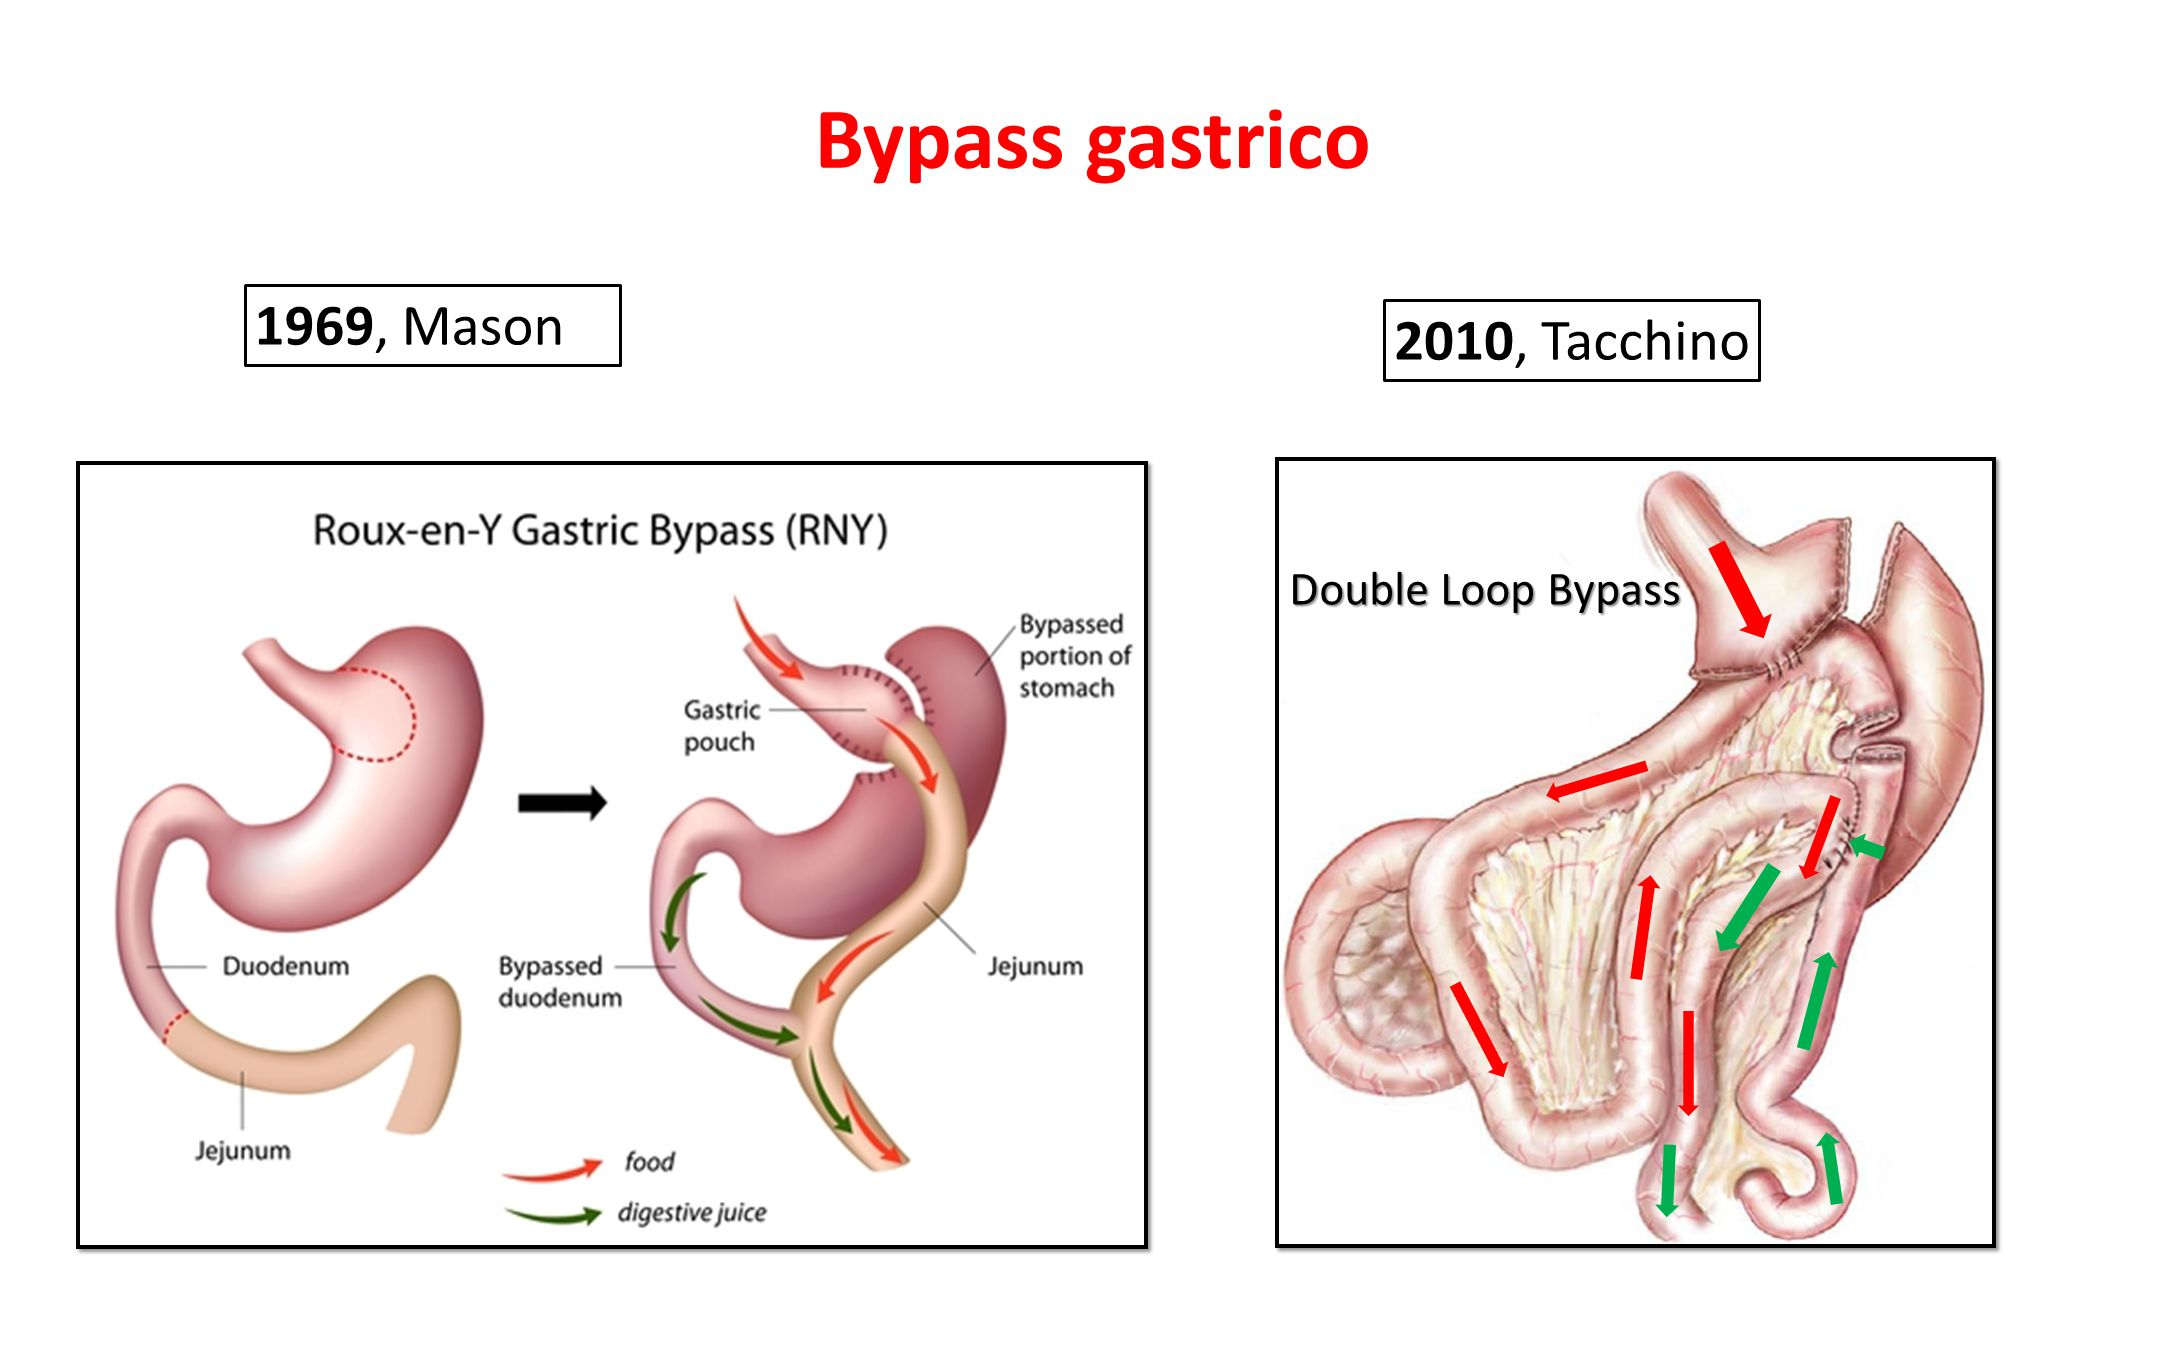 Bypass gastrico 1969, Mason 2010, Tacchino Double Loop Bypass